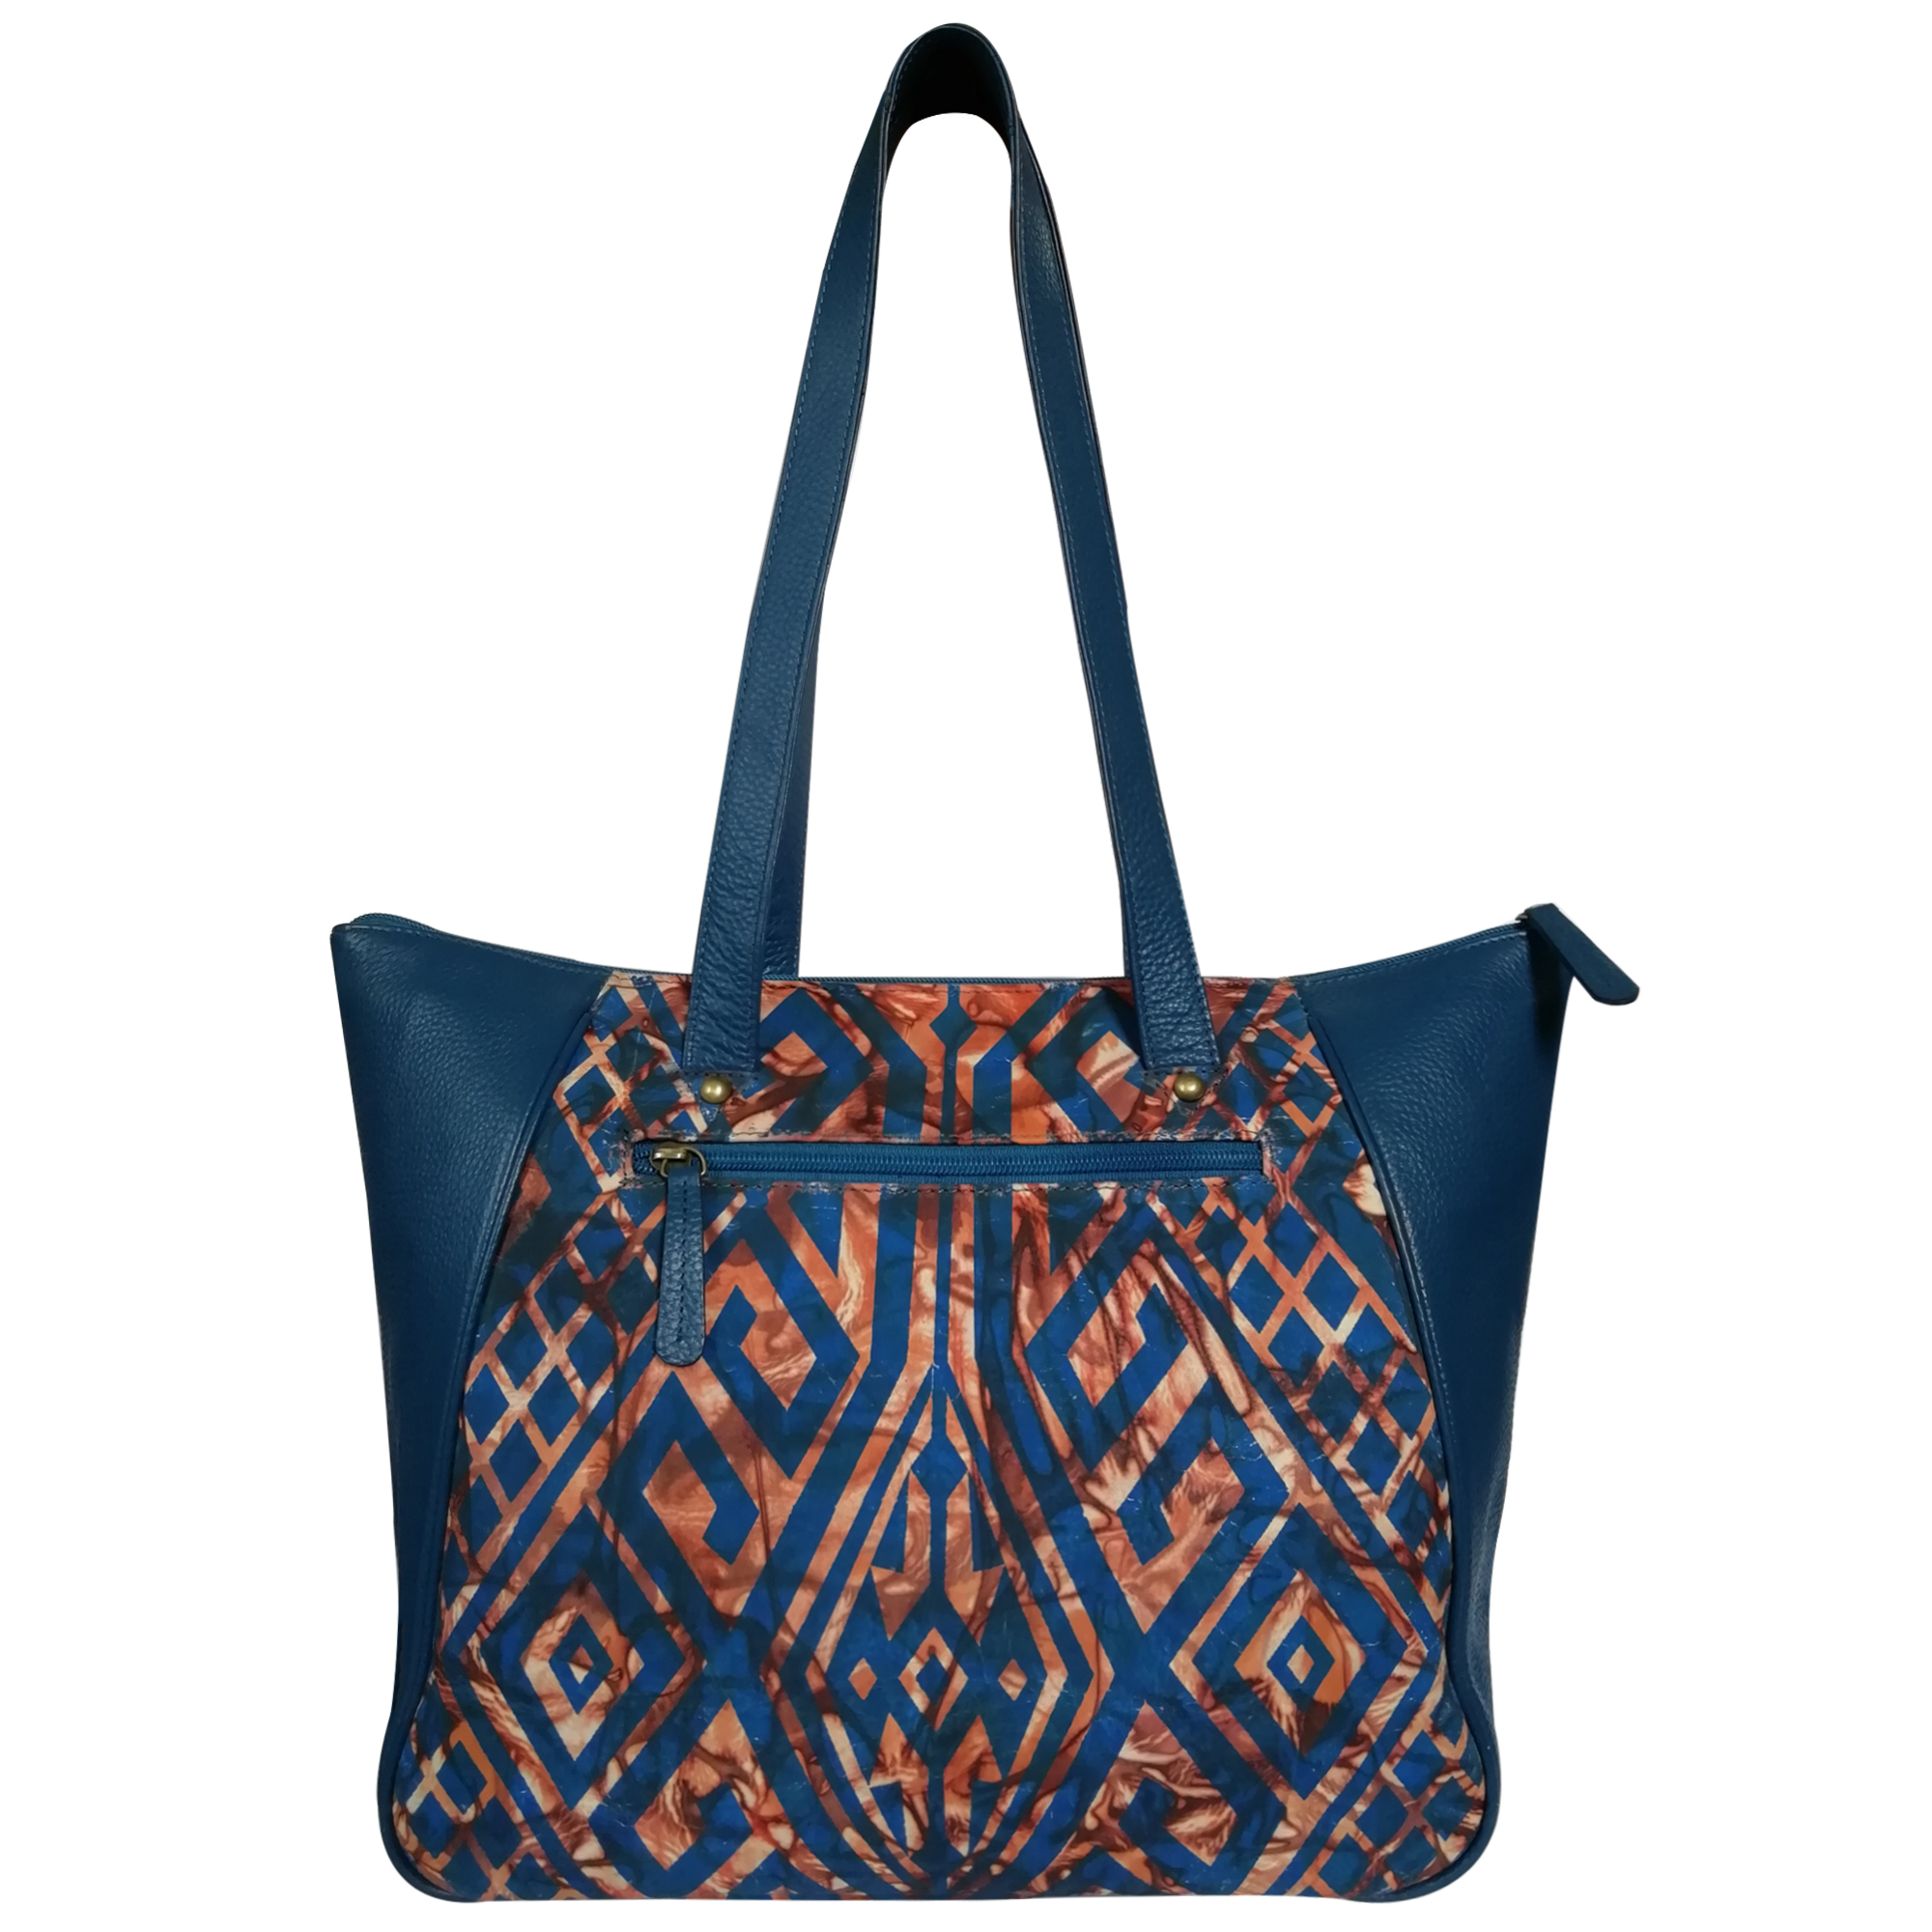 New Hand Painted Leather Tote For Women